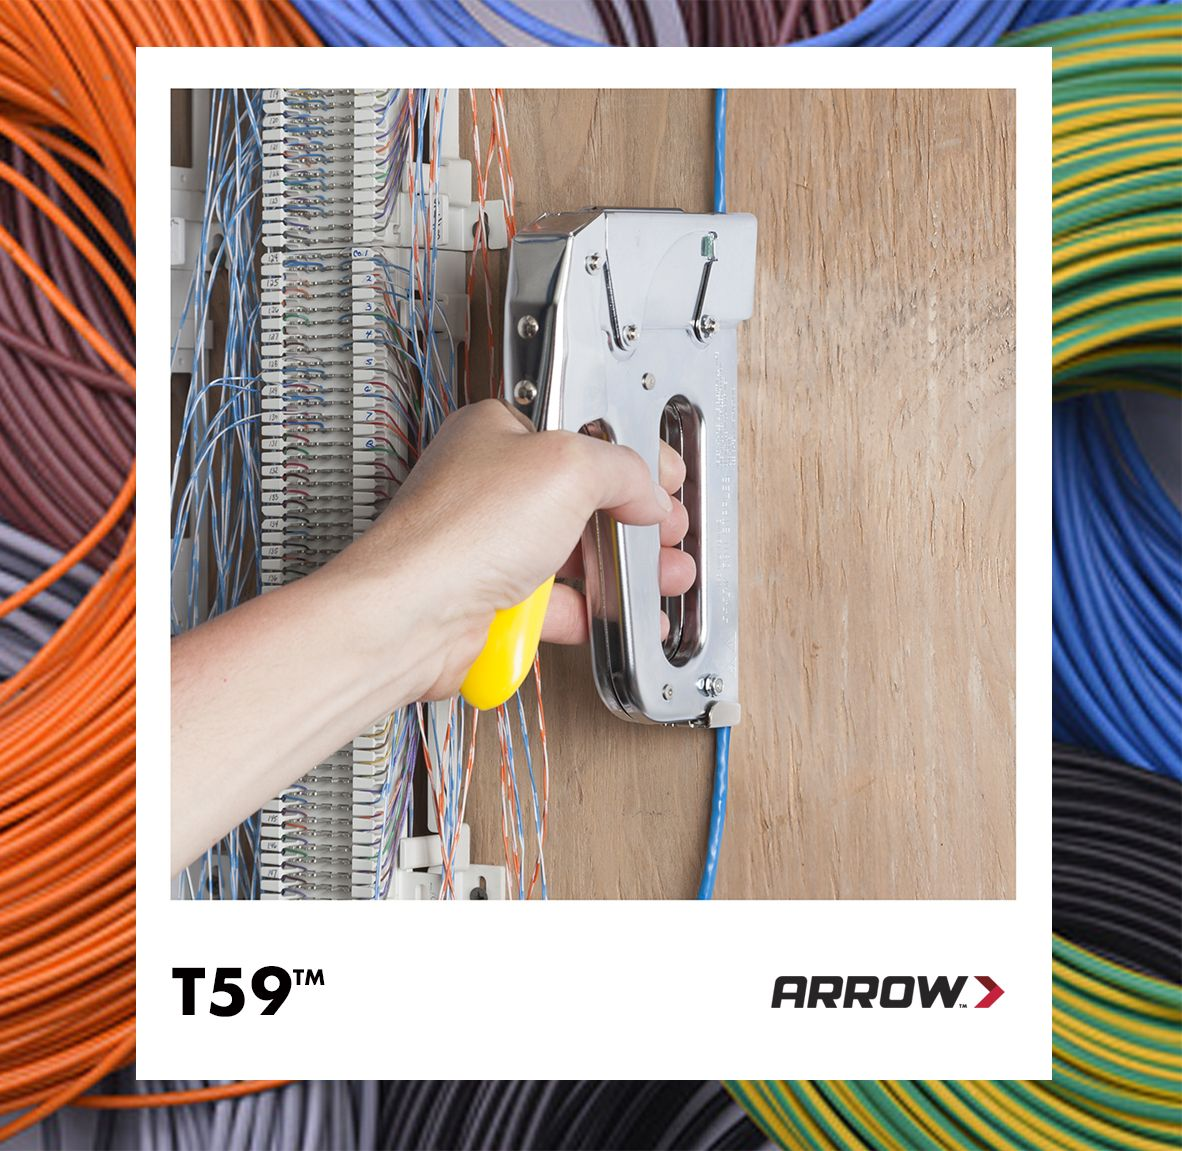 T59 Staple Gun Insulated Cable Arrows Wire Low Voltage Home Wiring In The Market For A Tacker If You Need To Attach Is Up 5 16 Inch Diameter Should Use Arrow Fastener